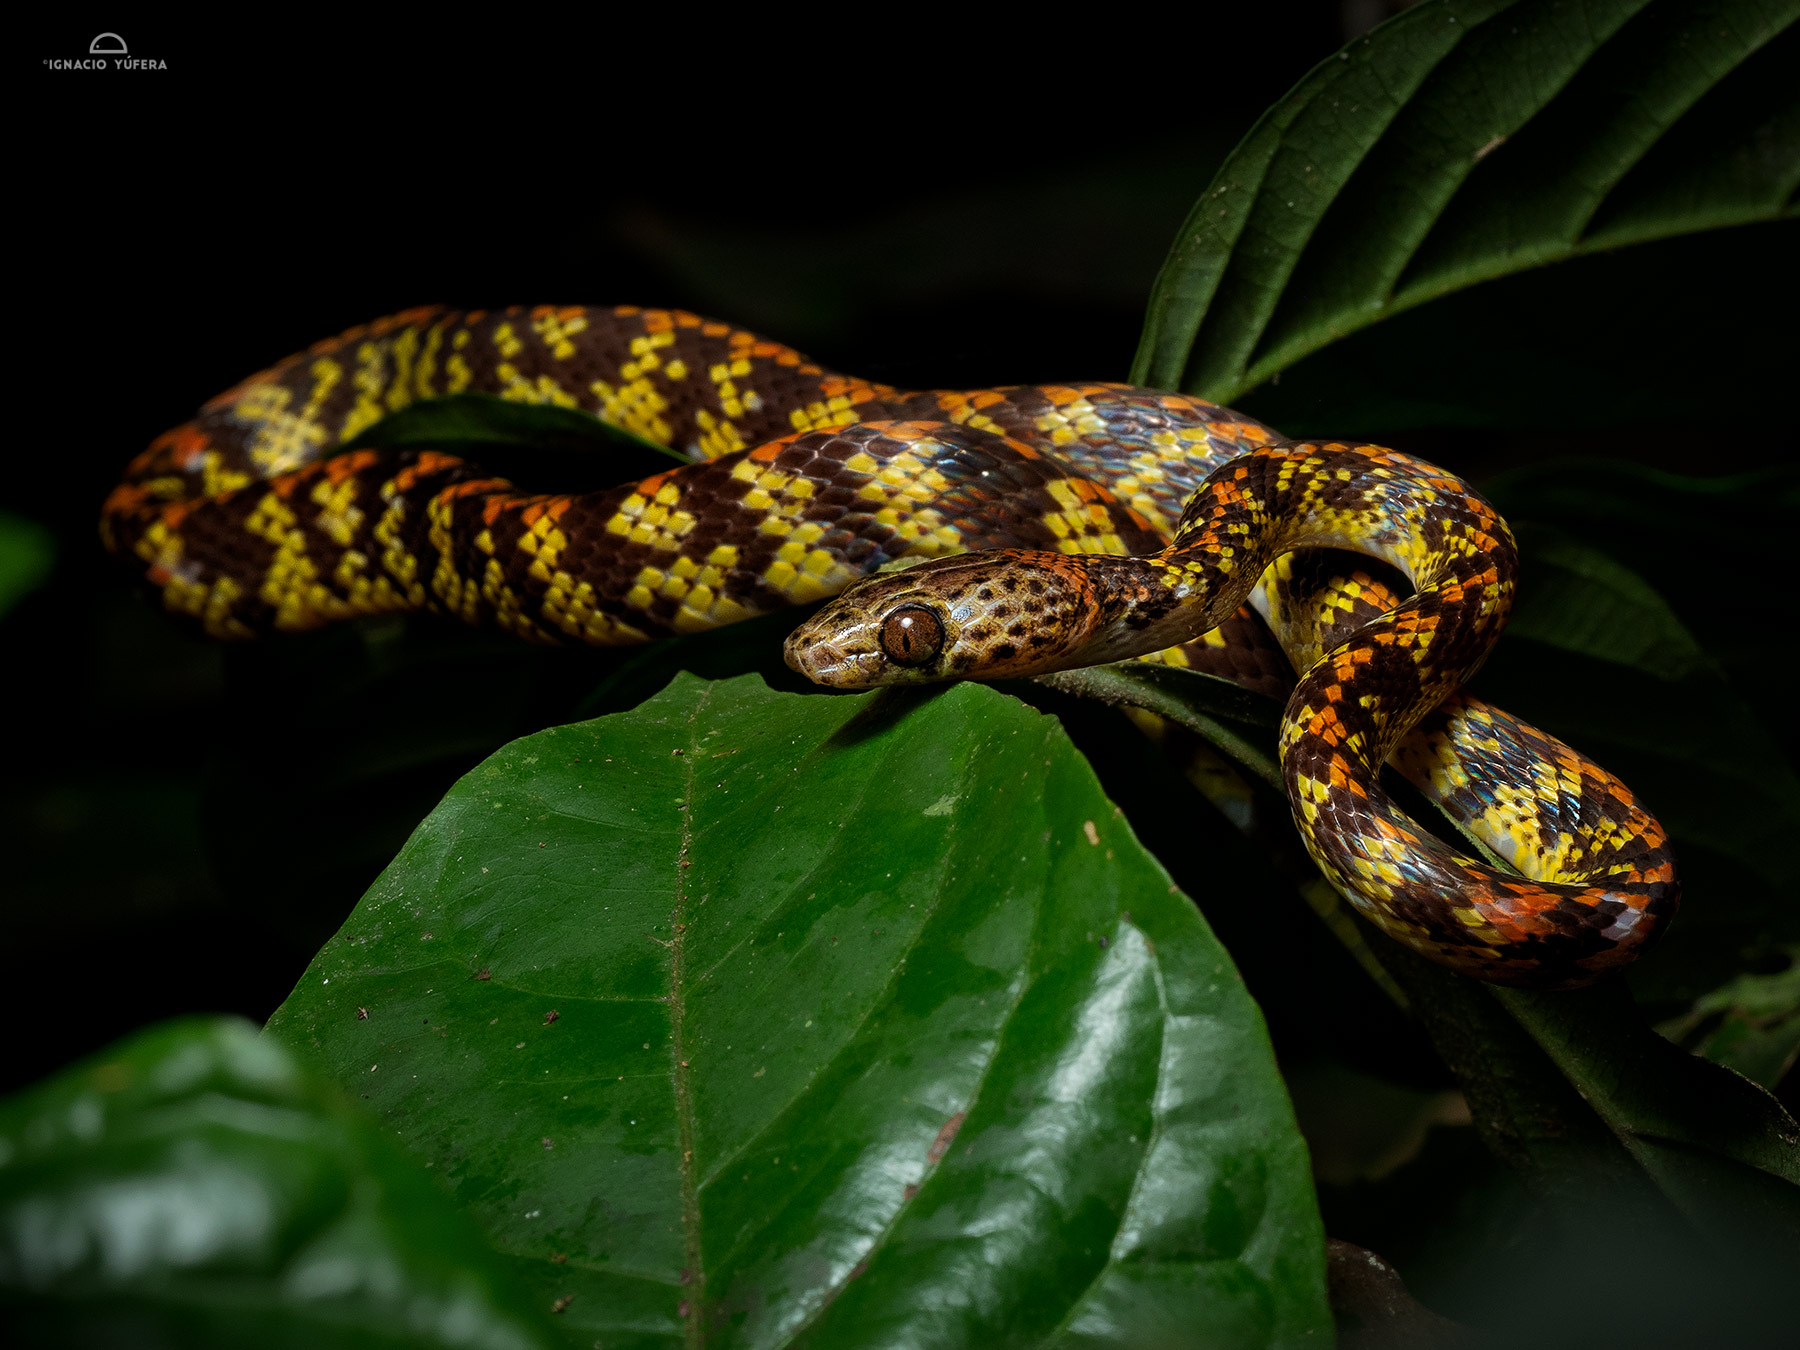 Checkerbelly snake (Siphlophis cervinus), Yasuní National Park, Ecuador